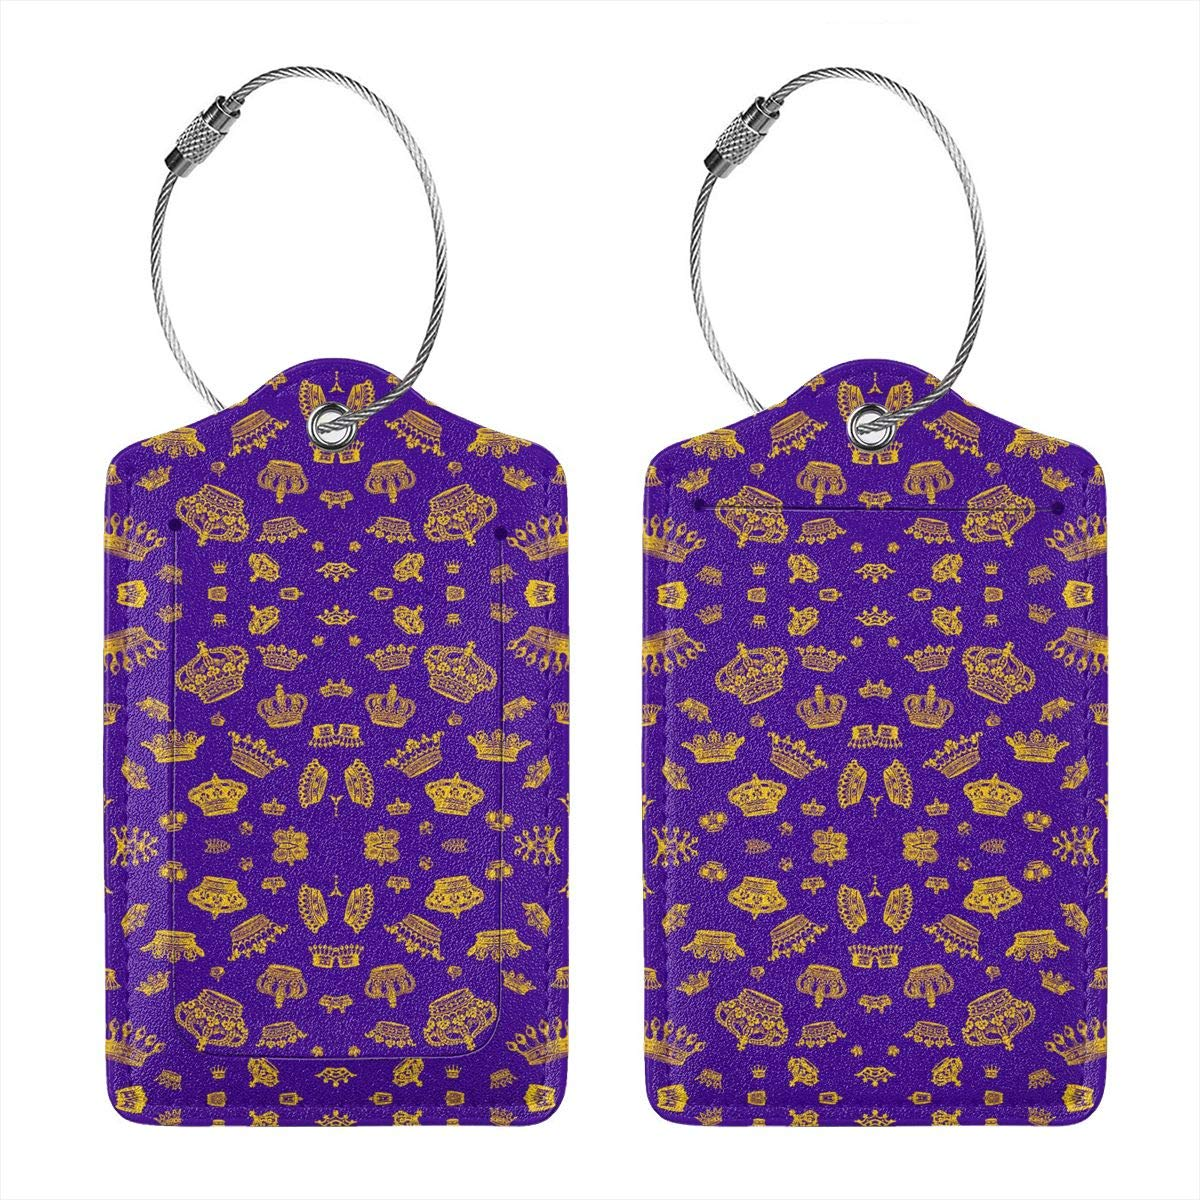 Royal Crowns Gold On Purple Leather Luggage Tags Personalized Travel Accessories With Adjustable Strap